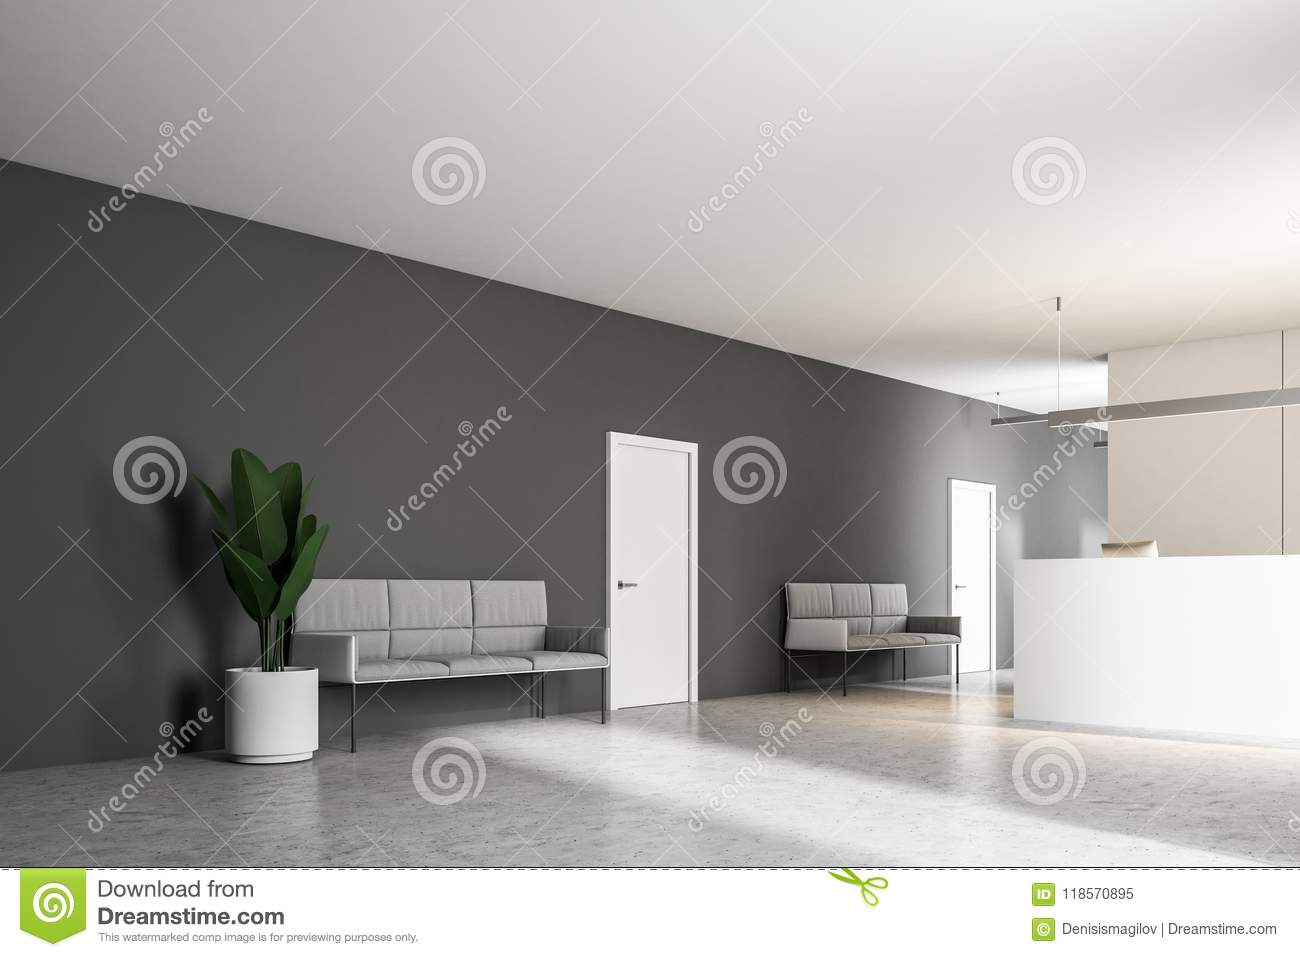 Gray Couches In An Office Reception Lobby Stock Illustration ...